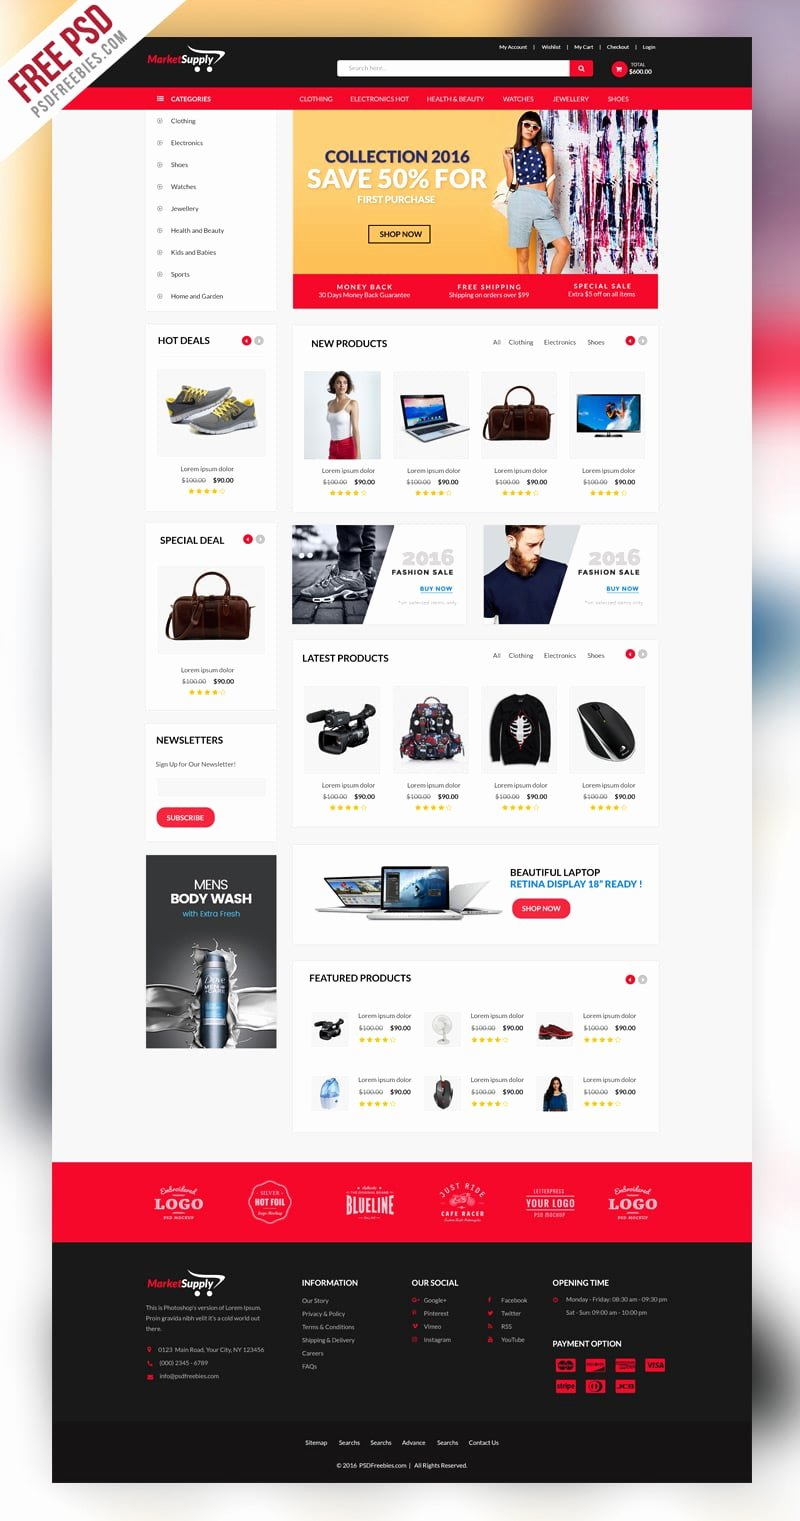 Template for Ecommerce Website Unique Free E Merce Web Templates Psd Css Author